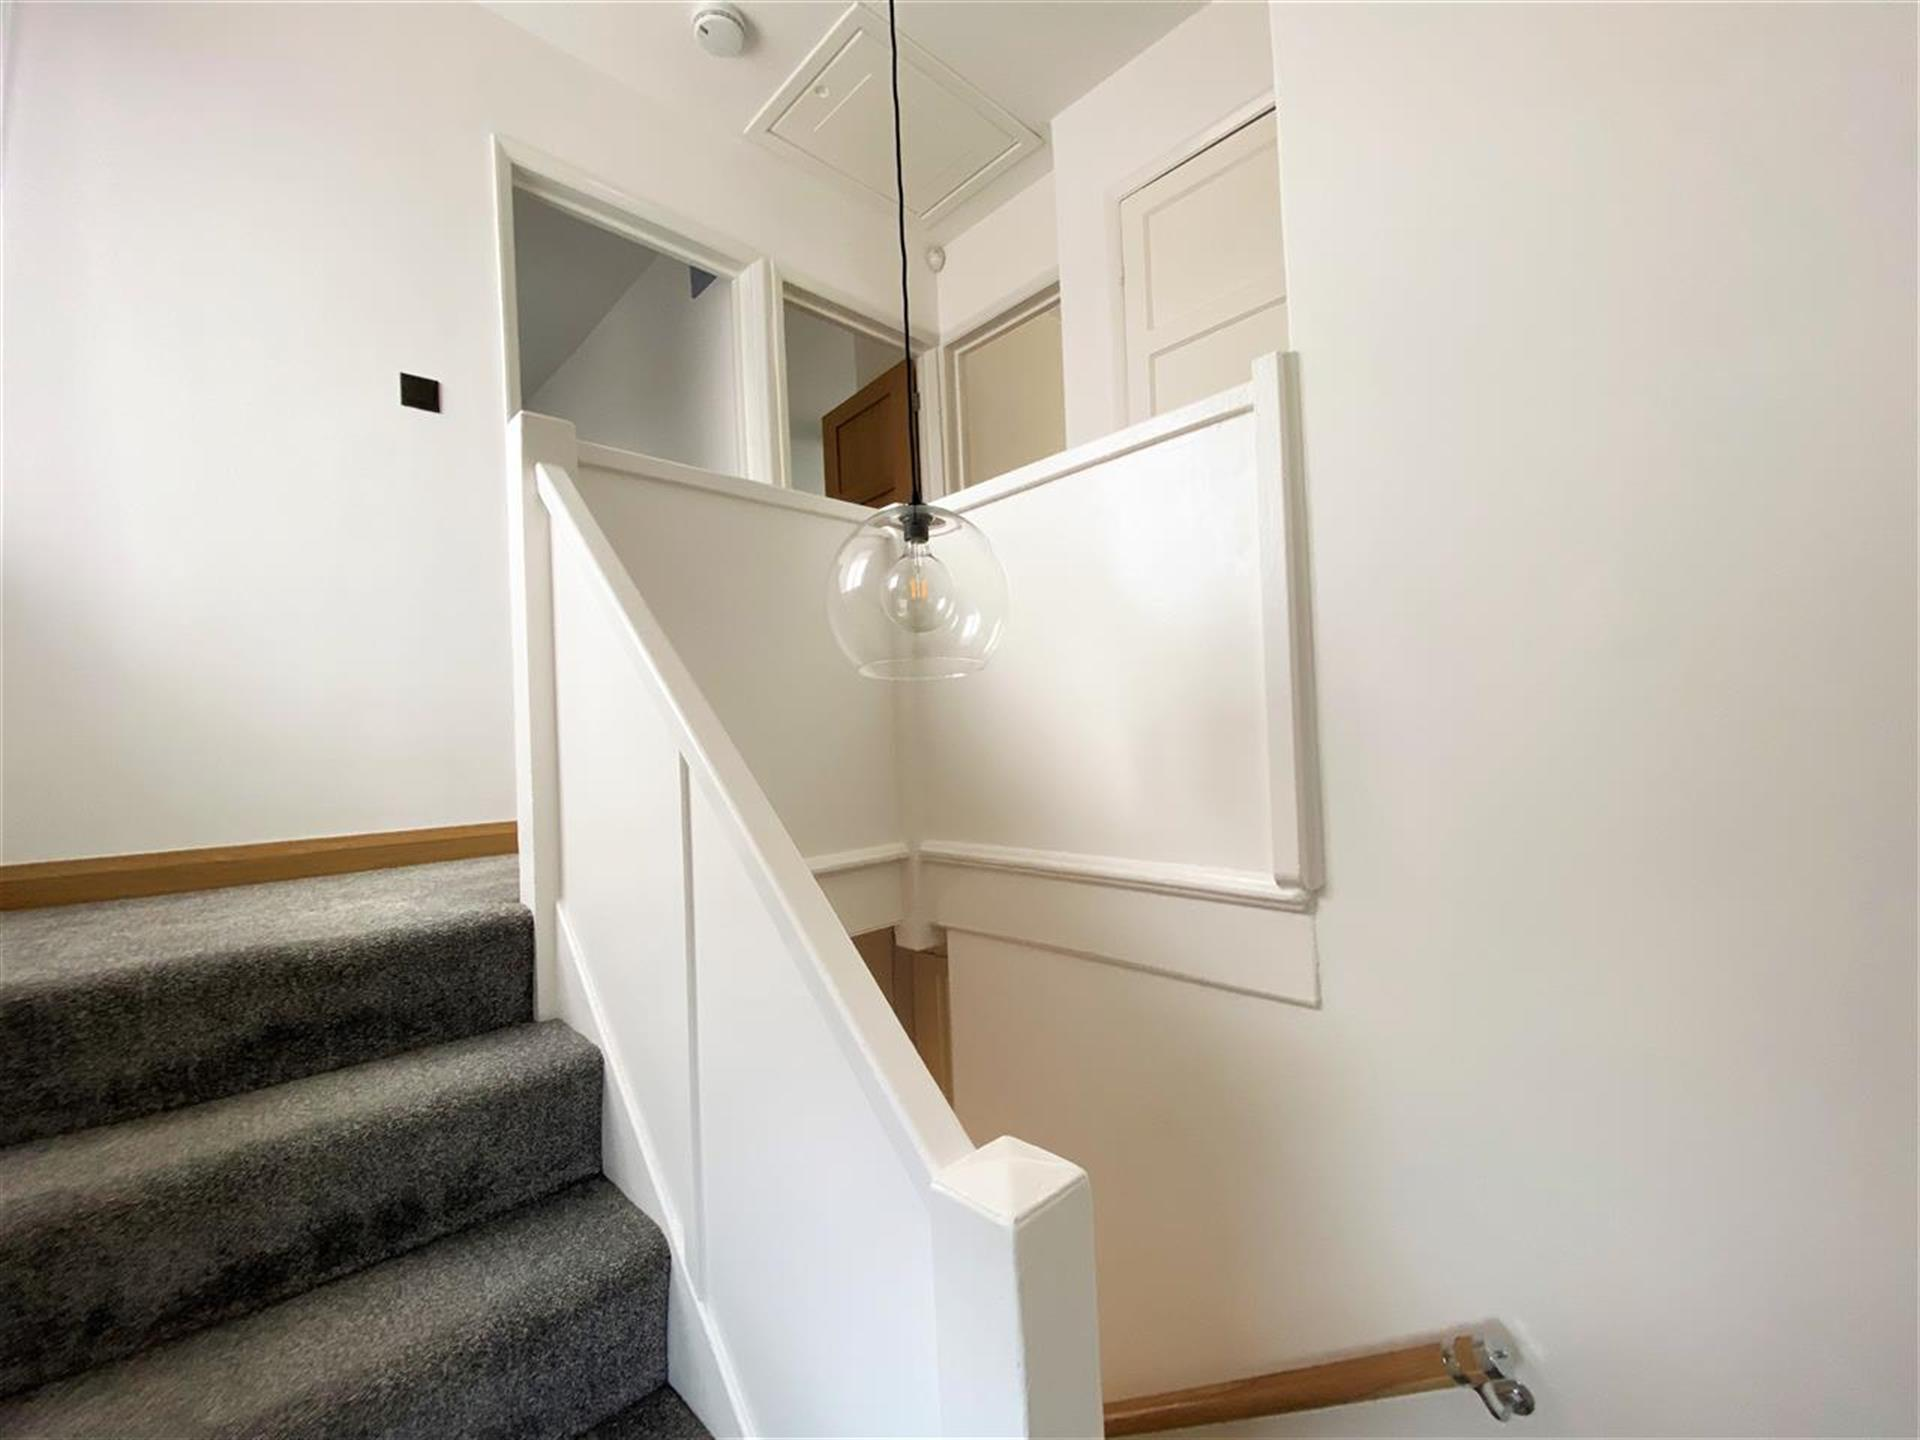 3 Bedroom Semi-detached House For Sale - Split Stairs